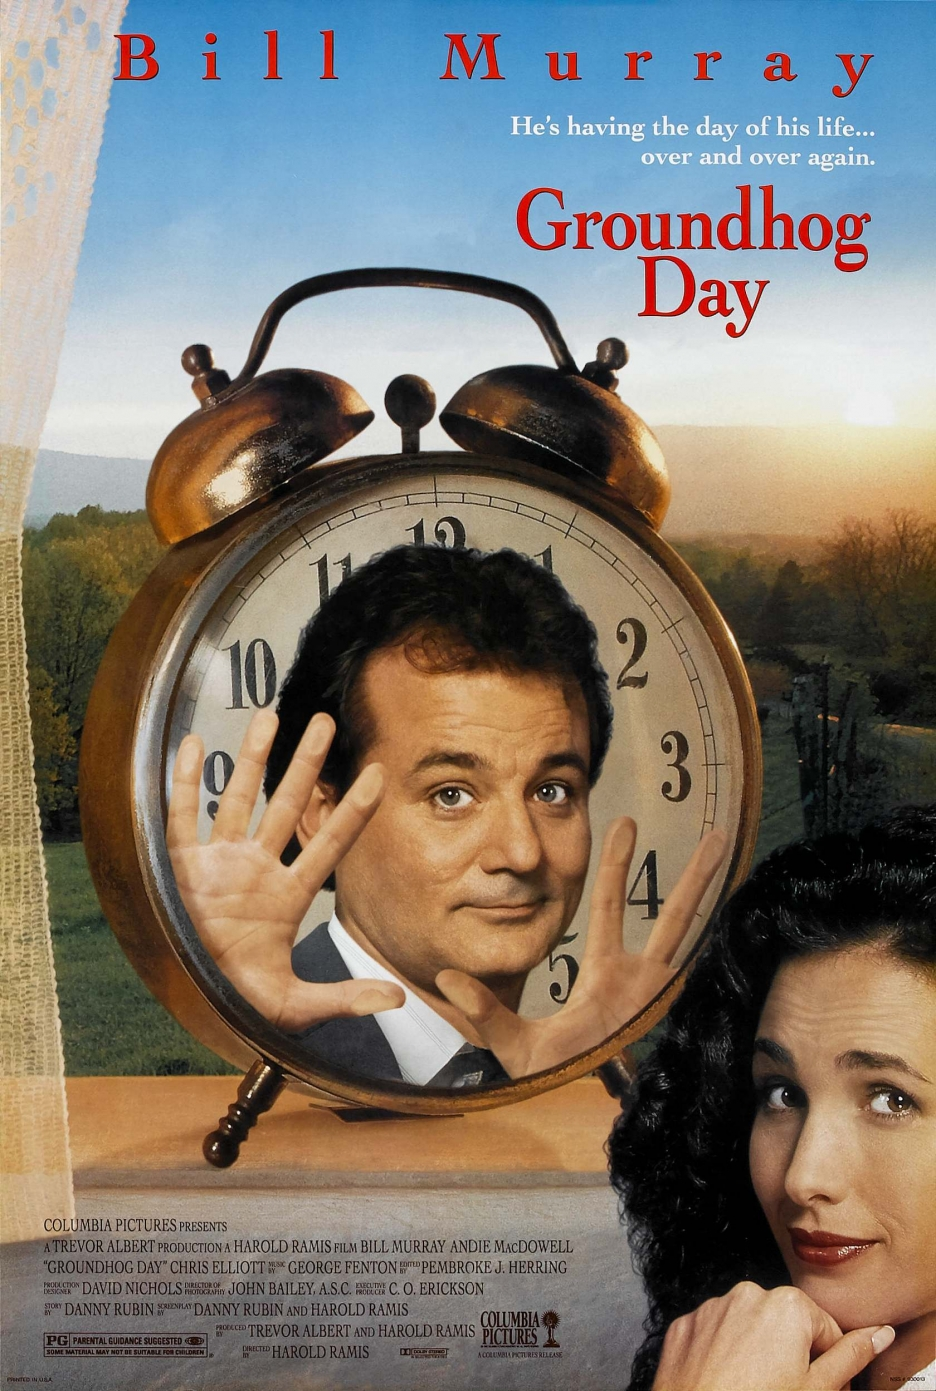 936full-groundhog-day-poster.jpg